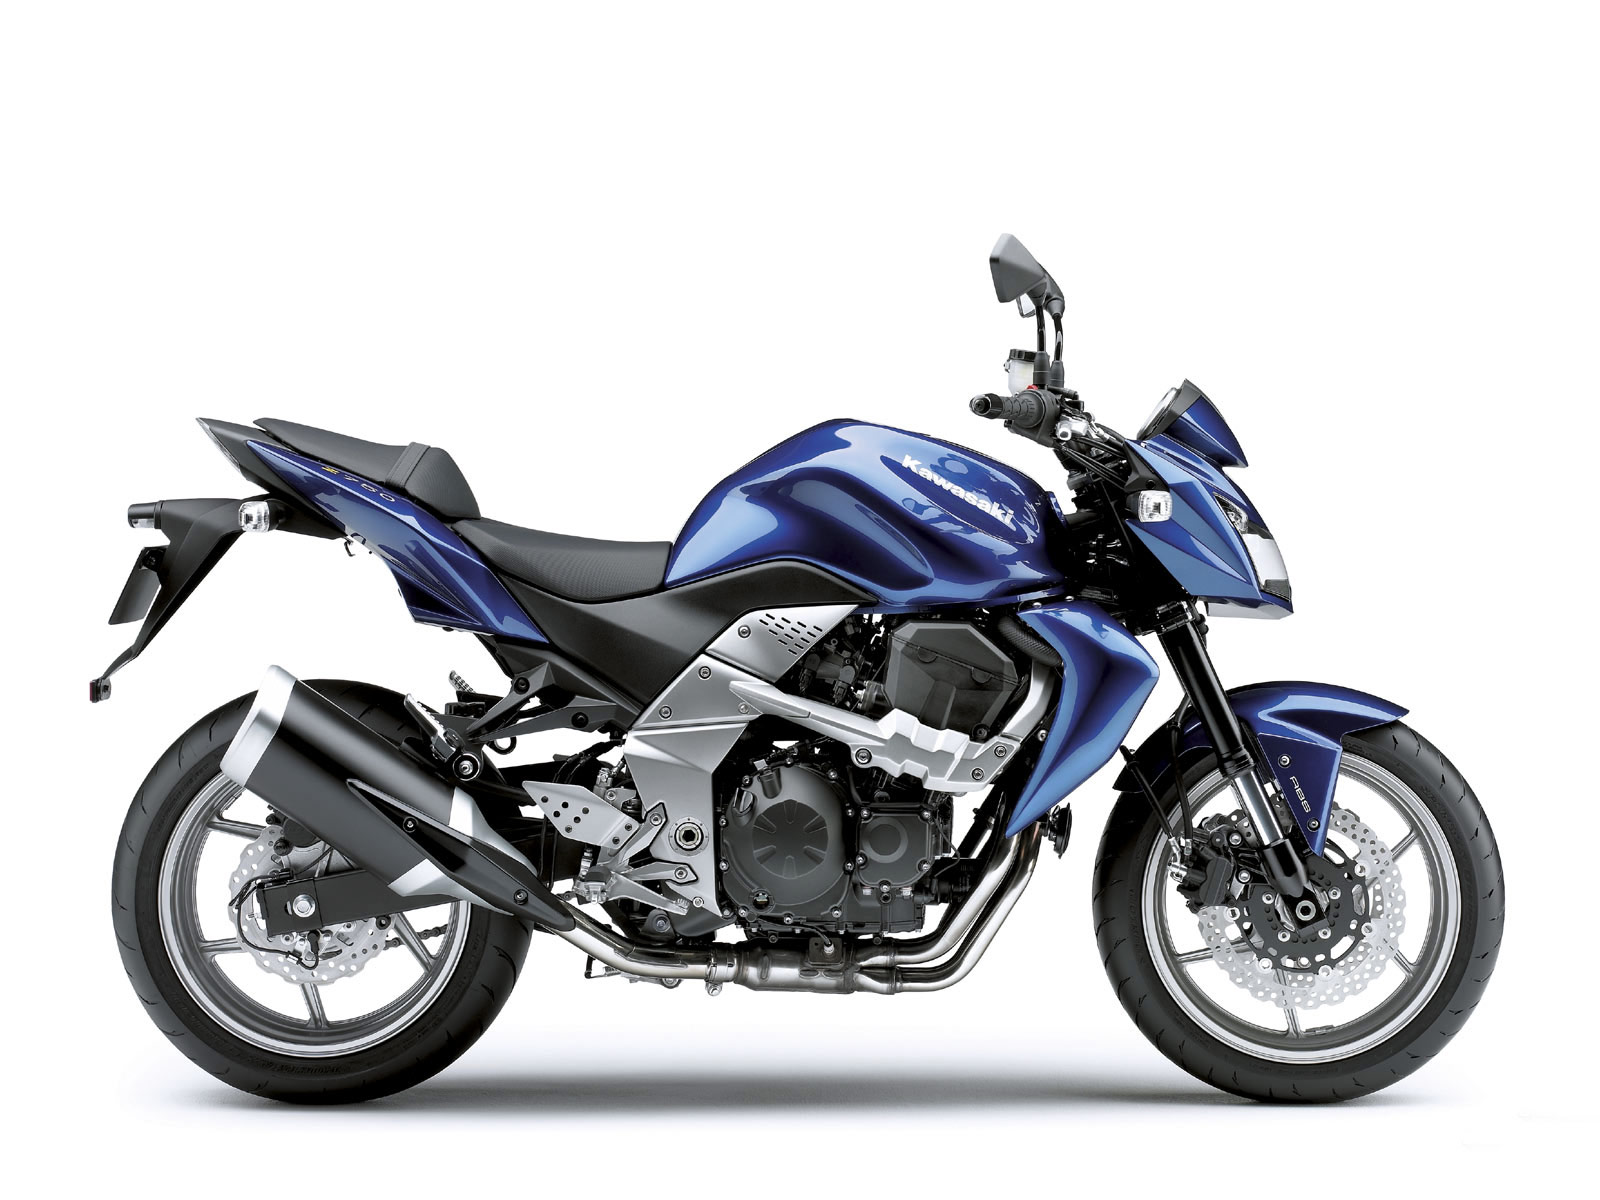 2009 KAWASAKI Z750 accident lawyers | wallpapers, specs |